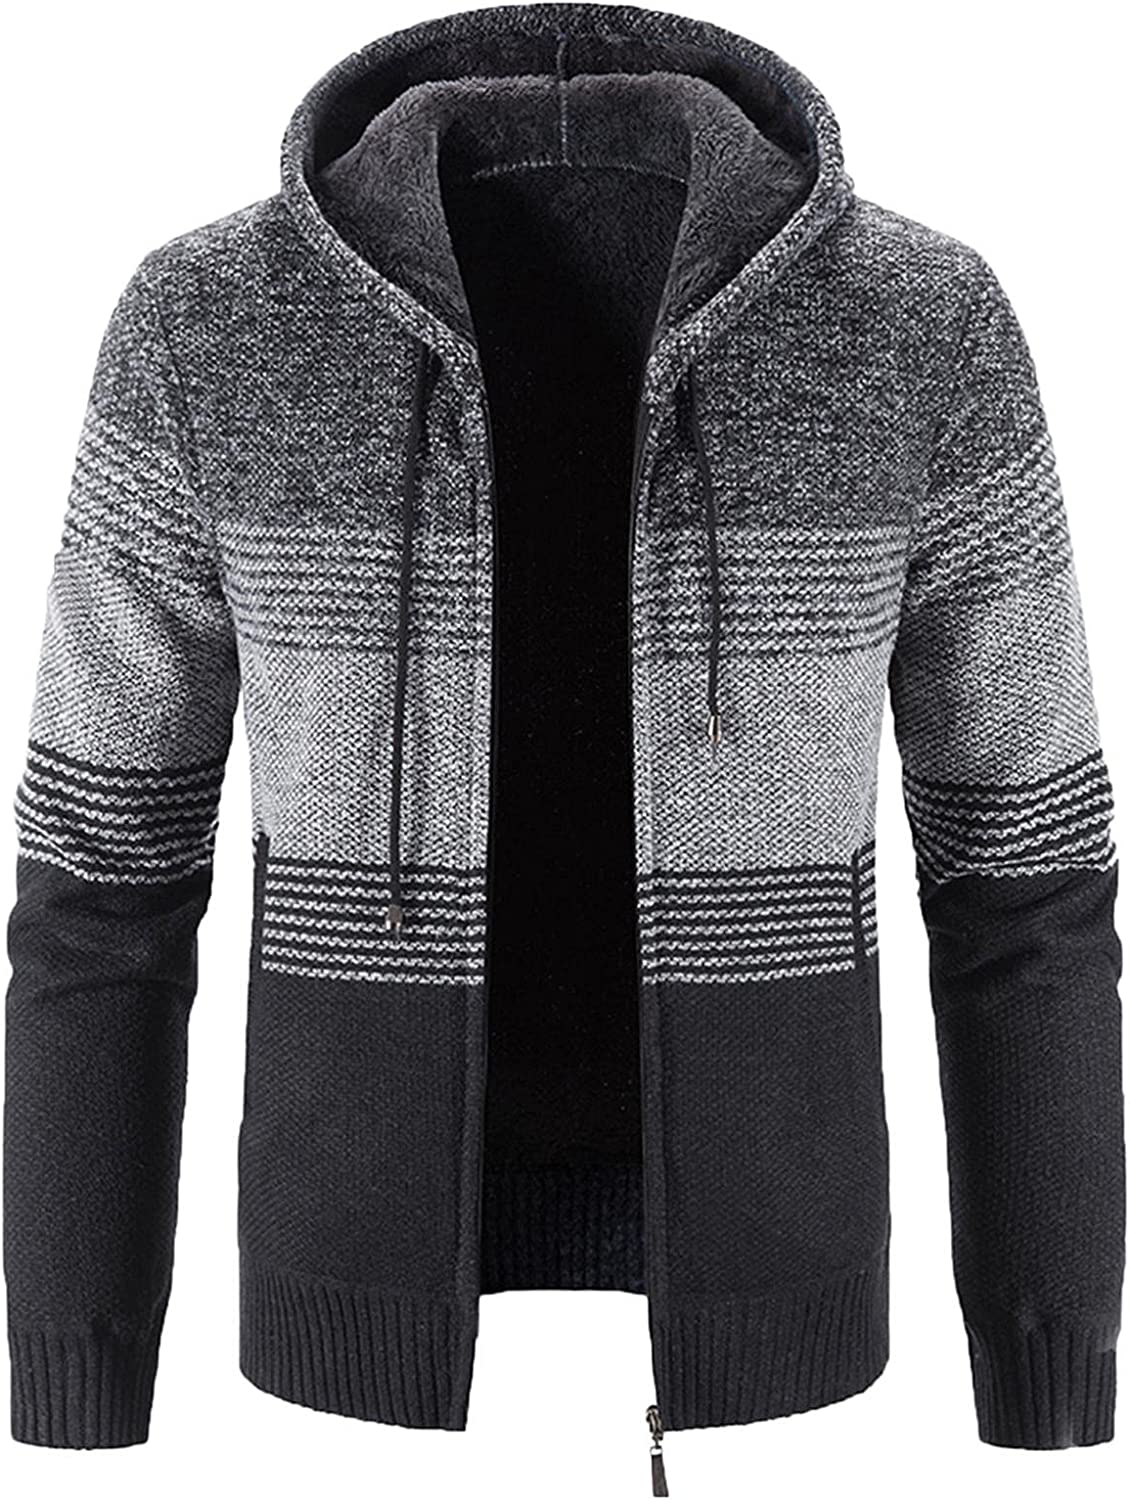 Mens Hooded Knitted Cardigan Sweater Long Sleeved Slim Fit Knitwear Tops Classic Casual Full Zipped Jacket Blouse